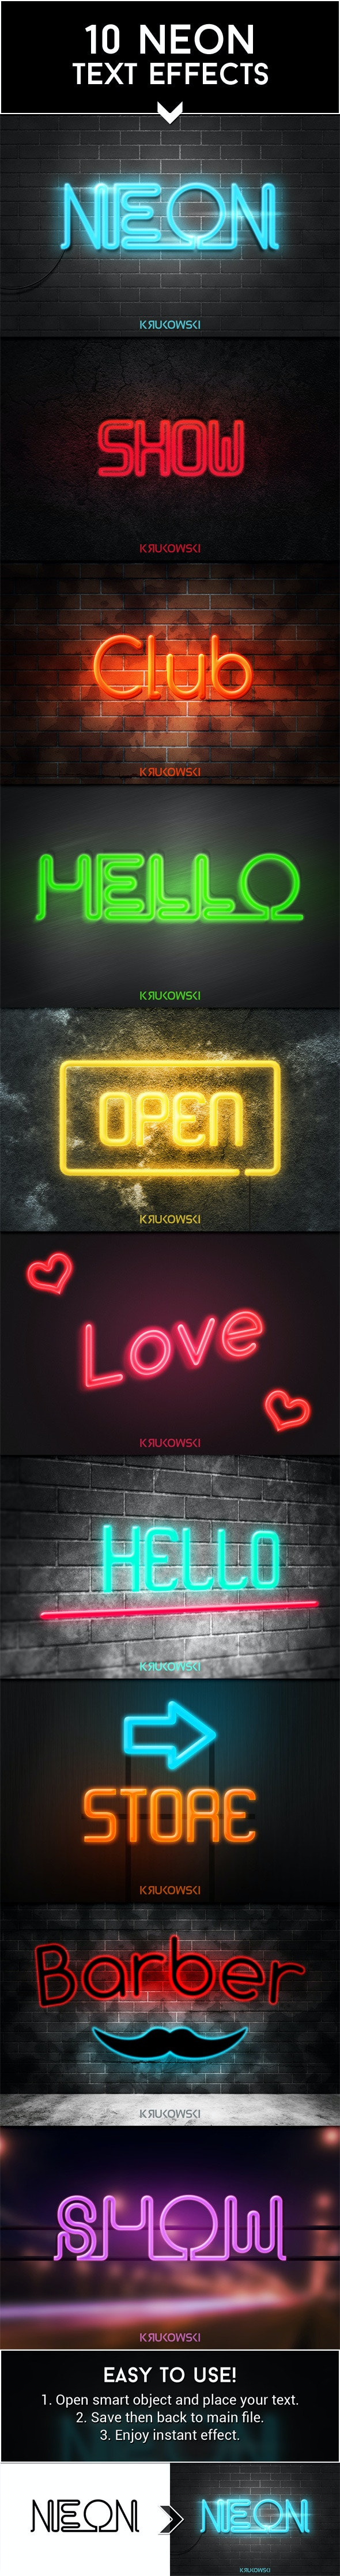 Neon Text Effects - Text Effects Actions